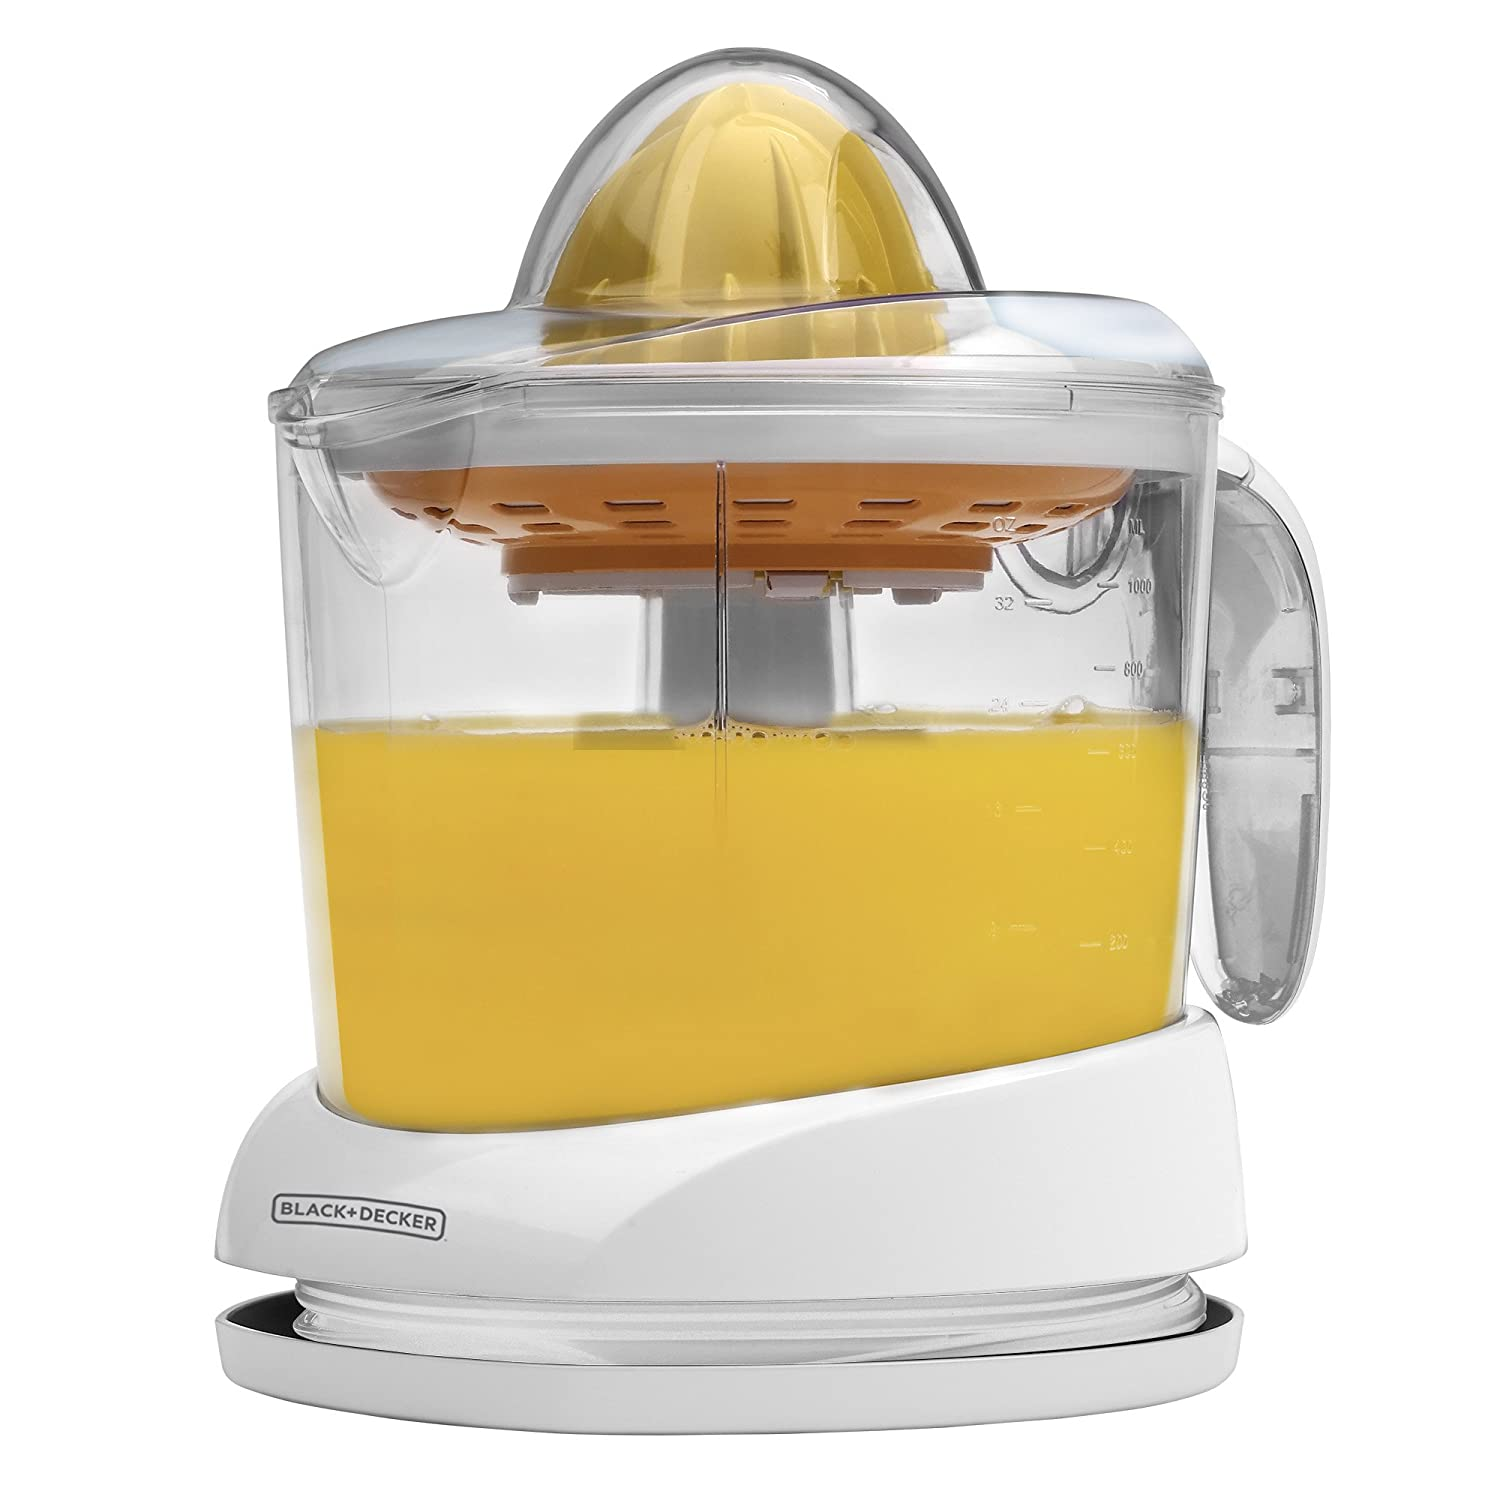 Gourmia EPJ100 Electric Citrus Juicer Stainless Steel 10 QT 160 Watts Rubber Handle And Cone Lid For Easy Use One-Size-Fits-All Juice Cone For Easy Storage.